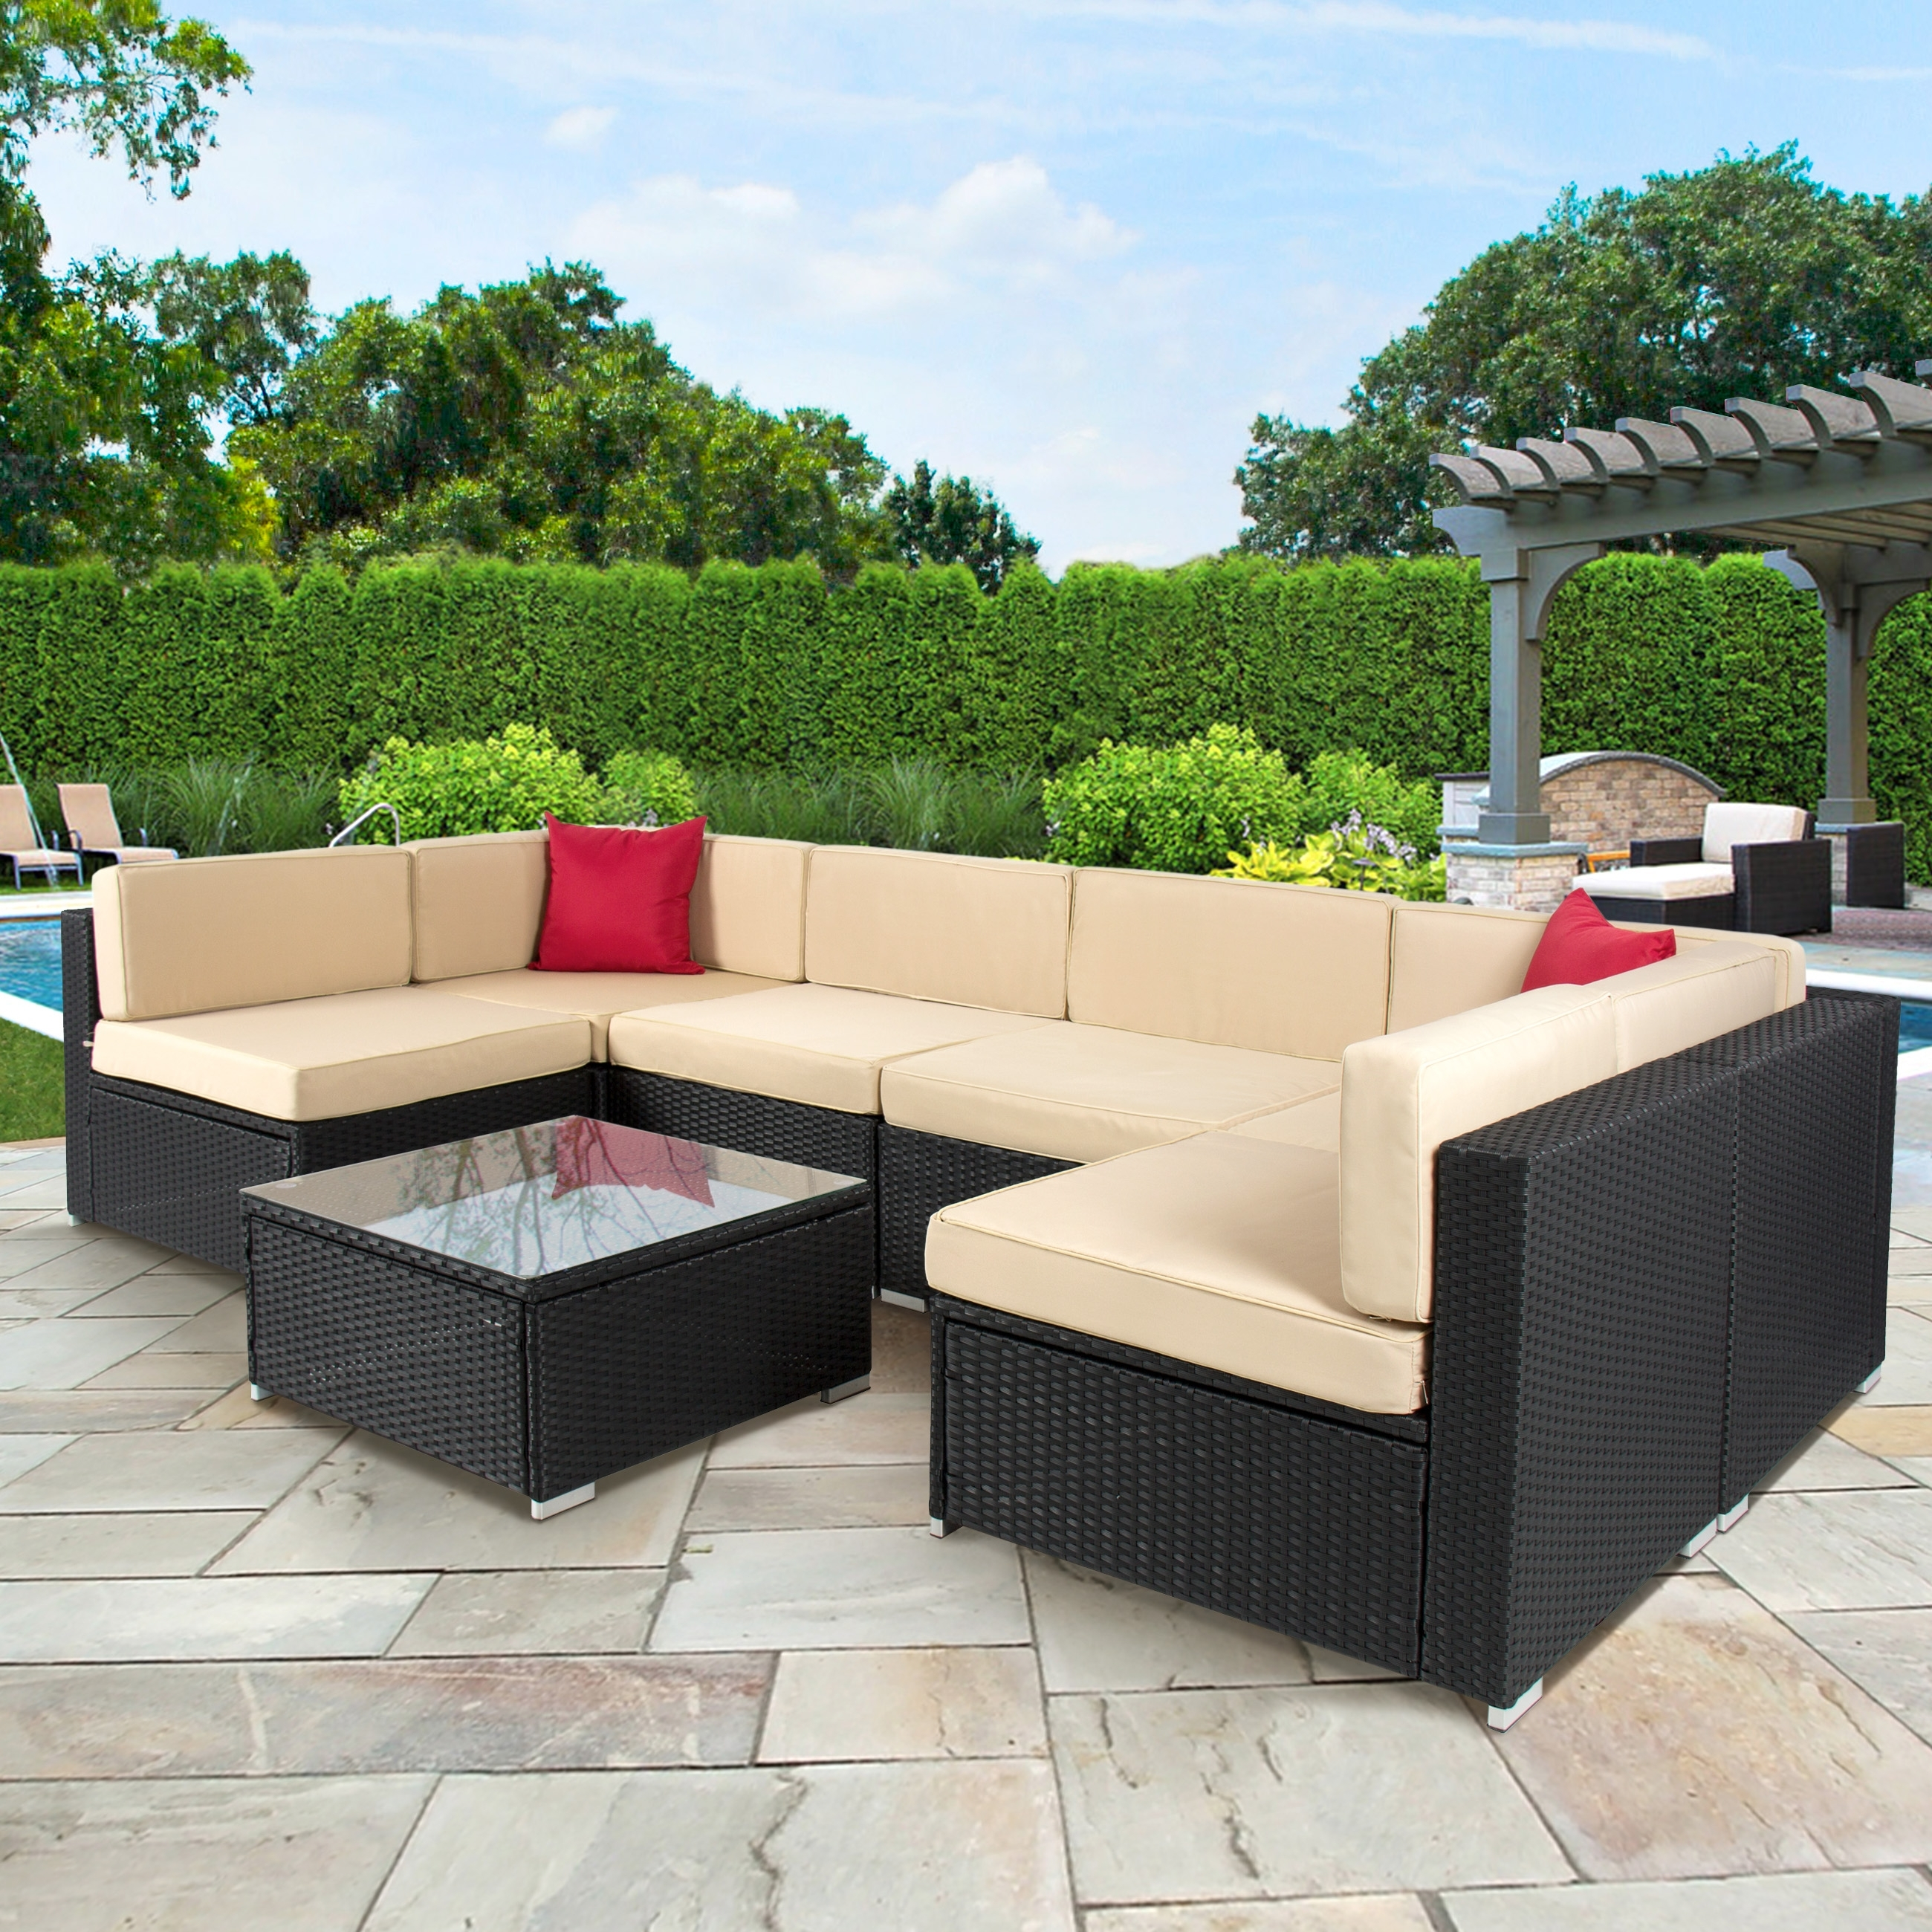 Outdoor Sofa Chairs Pertaining To Most Recent Costway Daybed Patio Sofa Furniture Round Retractable Canopy (View 10 of 20)